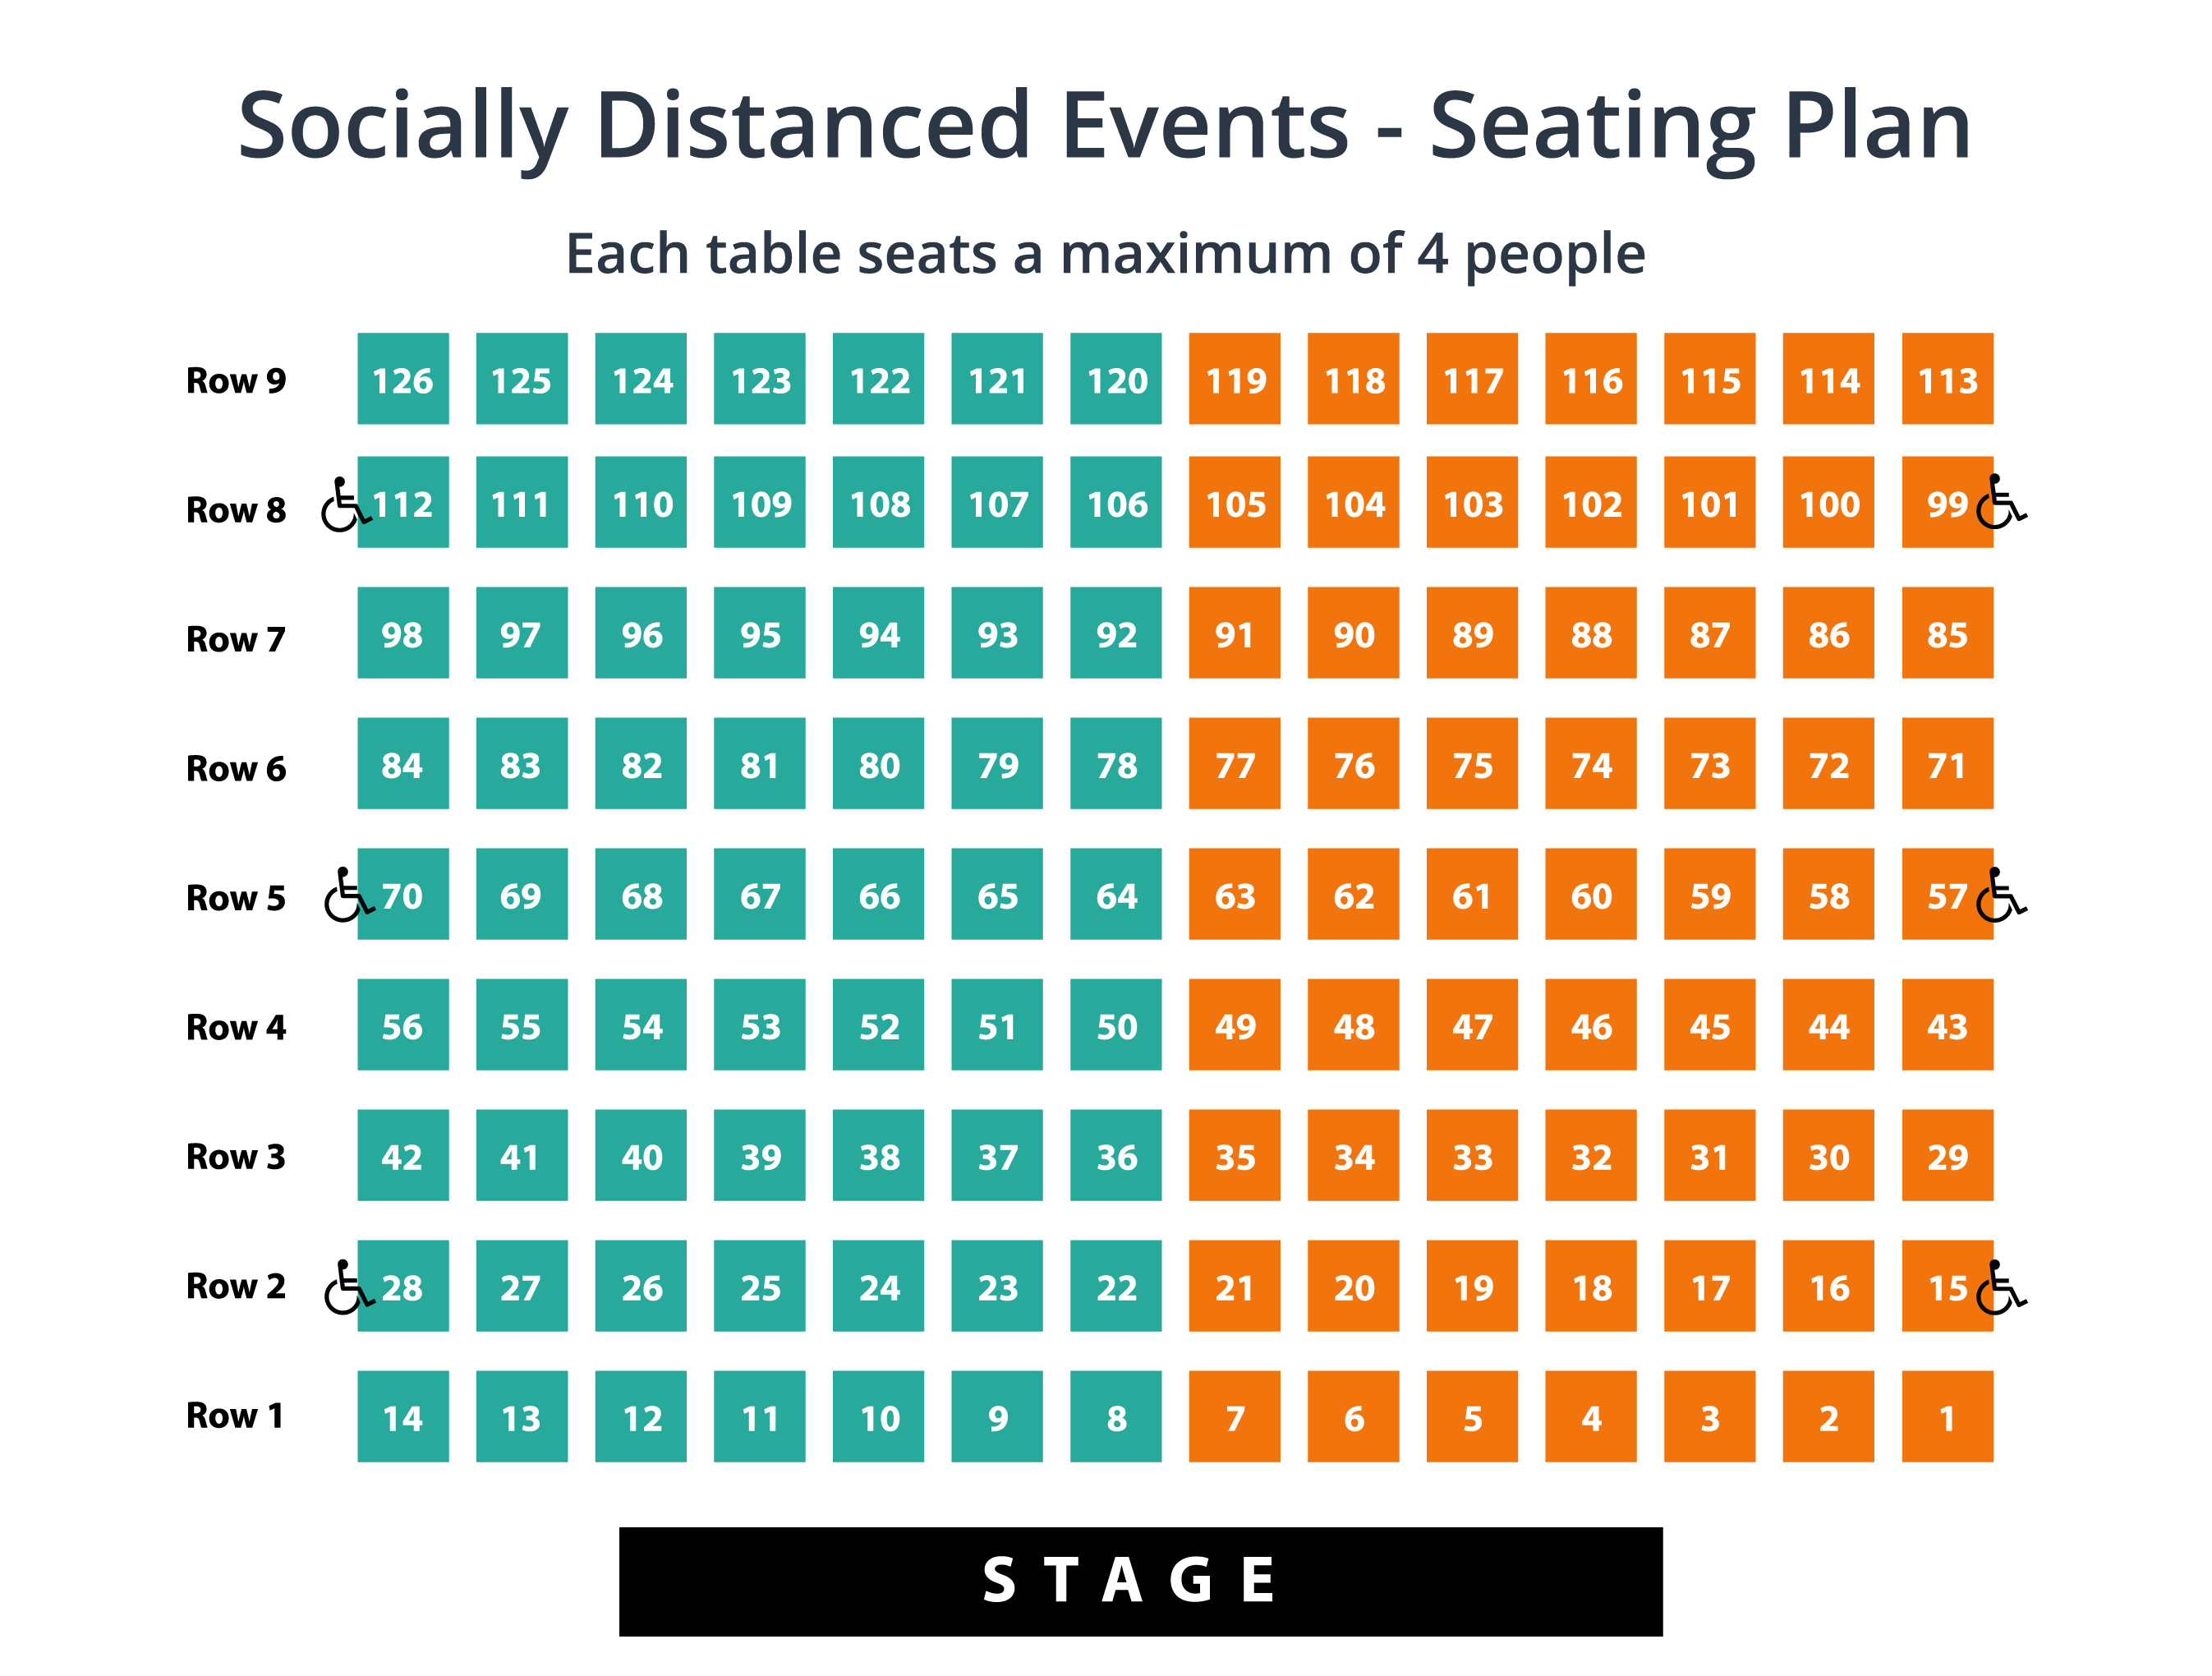 seating-plan-socially-distanced.png